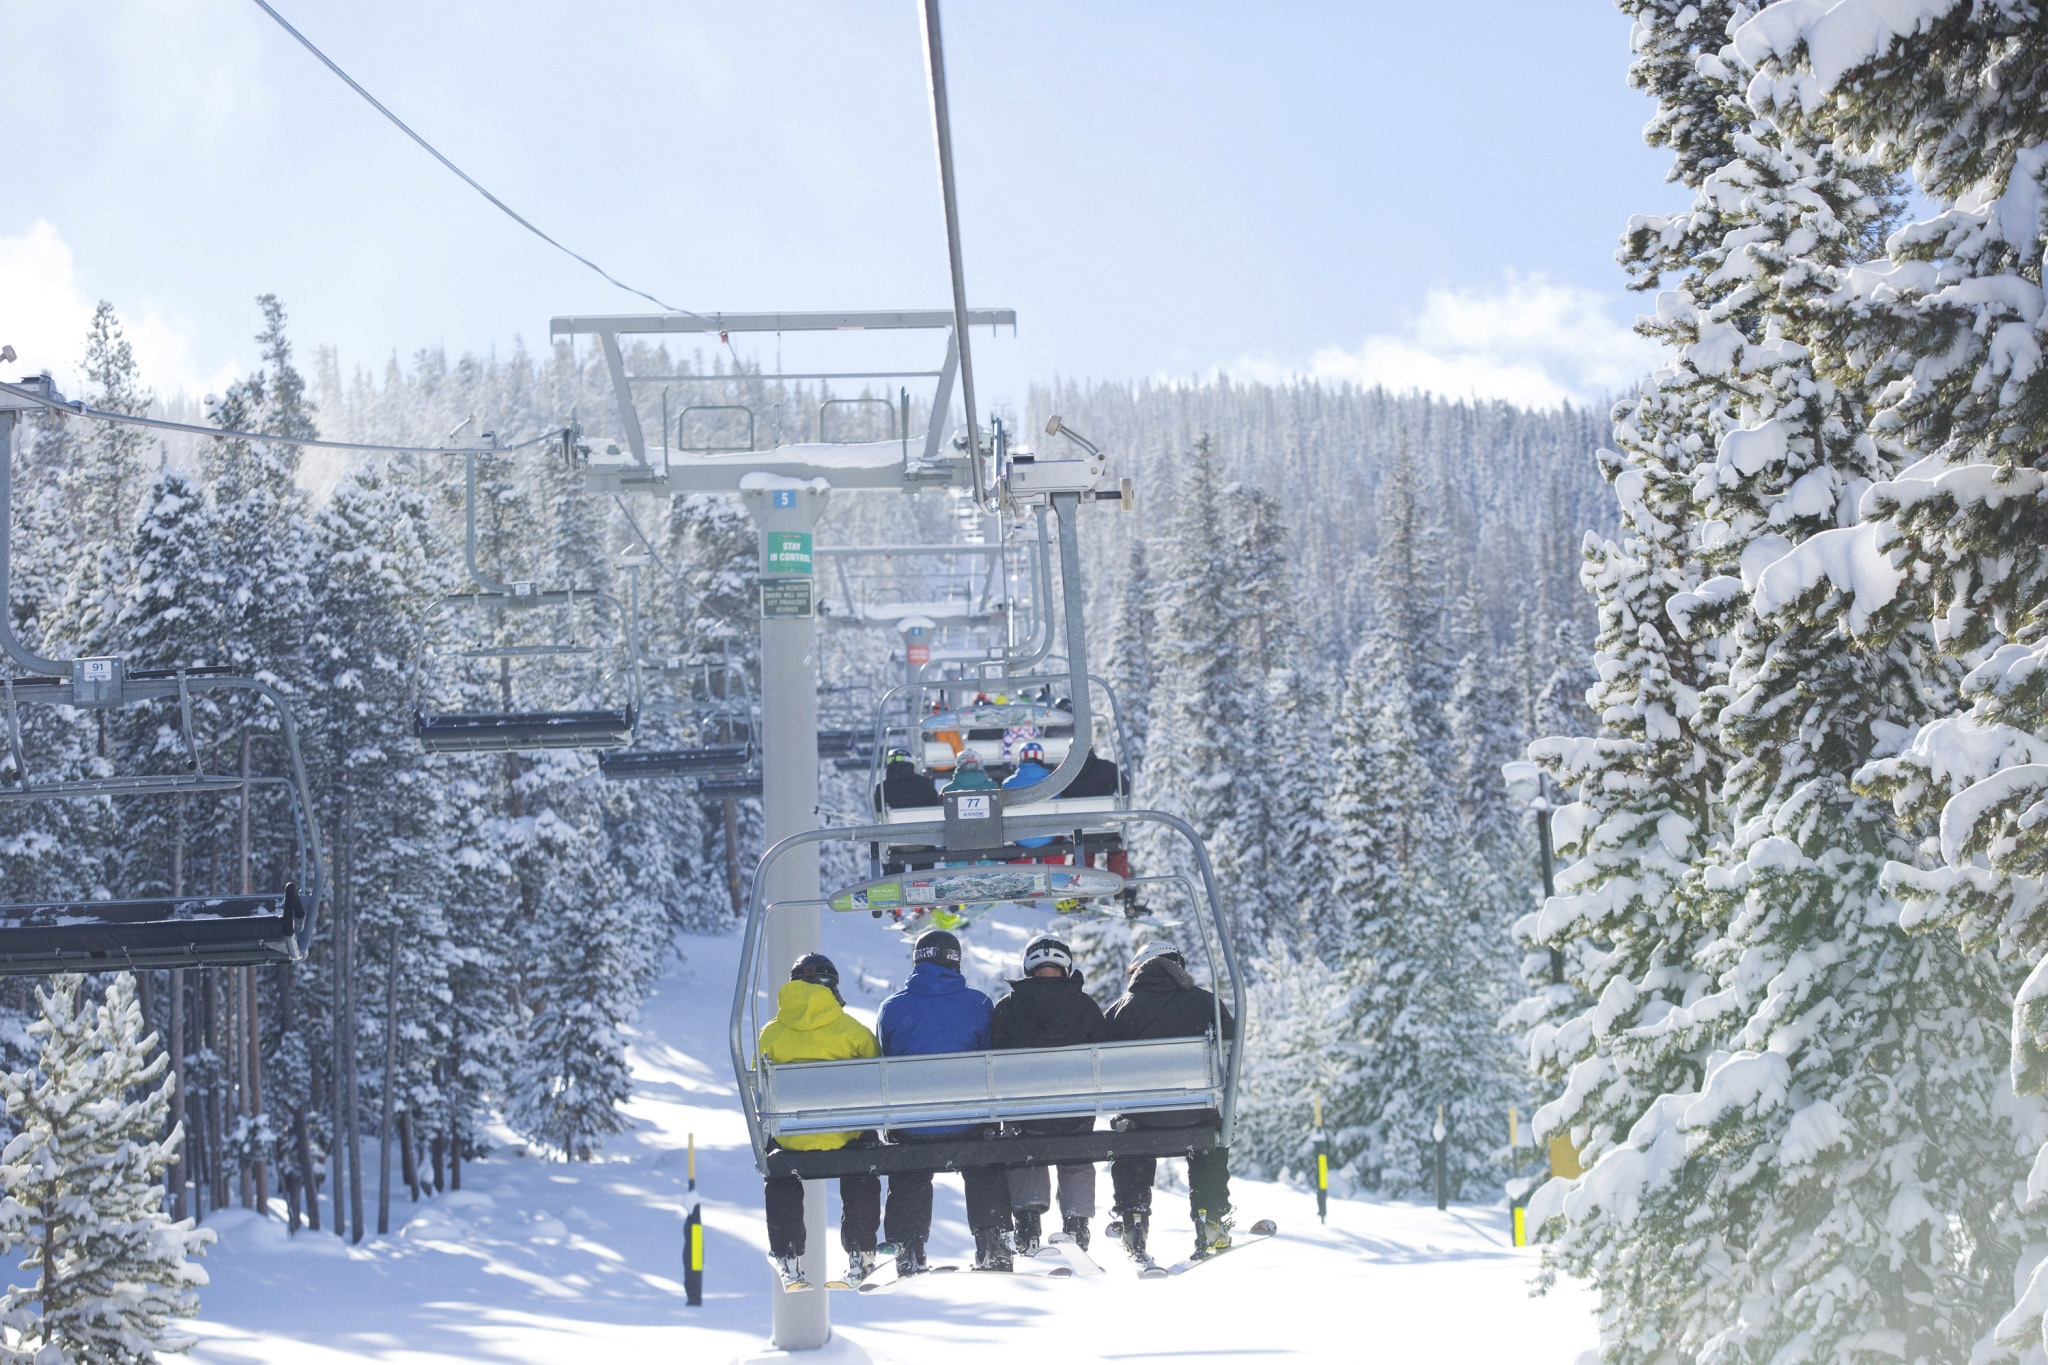 A recent report commissioned by the National Ski Areas Association shows that the percentage of people with household incomes over $100,000 who participate in snow sports has risen over the past eight seasons from 45 percent of ski area visitors to 56 percent of visitors.